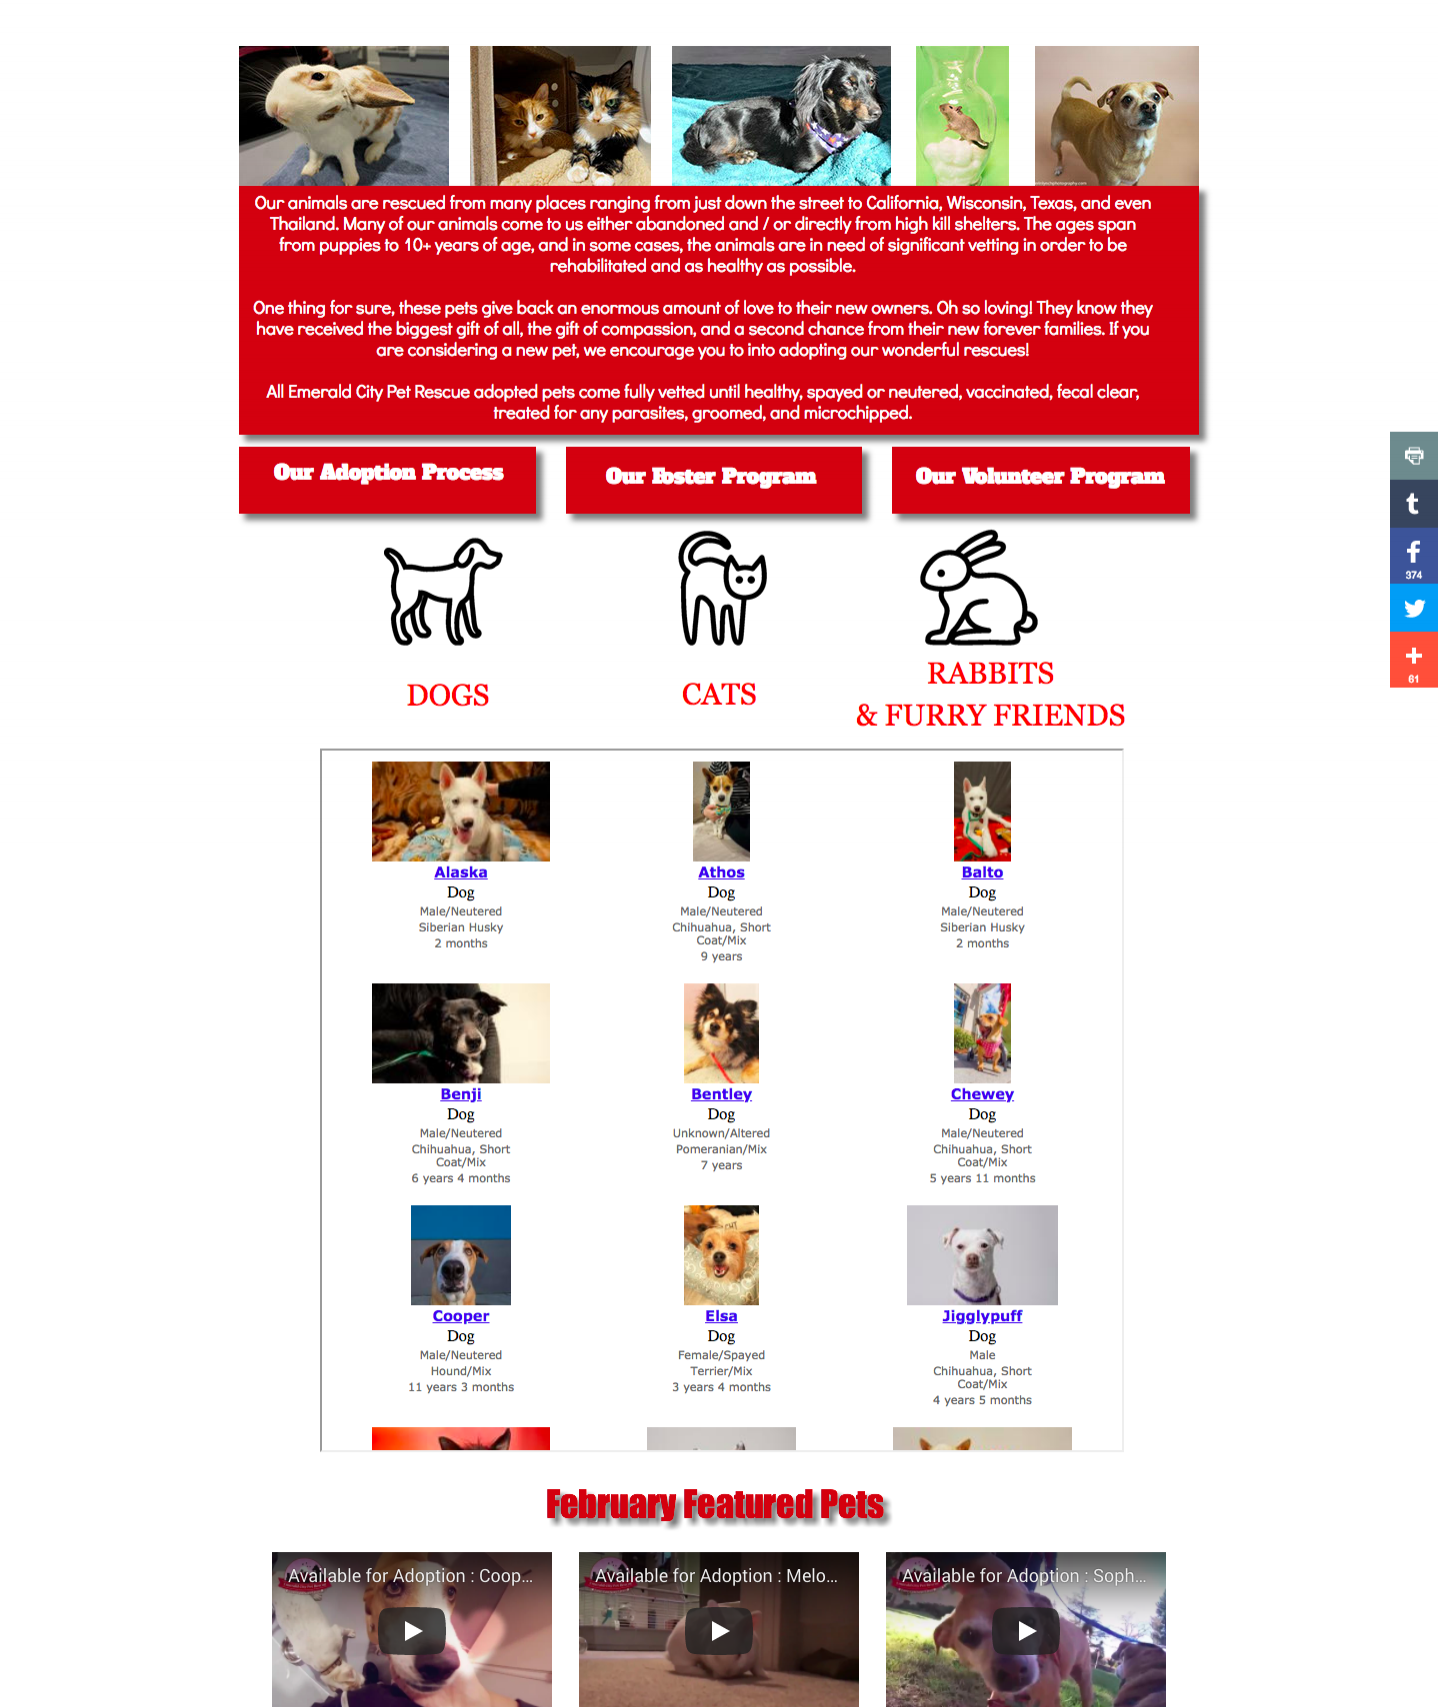 screencapture-emeraldcitypetrescue-org-available-pets-html-2018-03-16-13_42_33.png